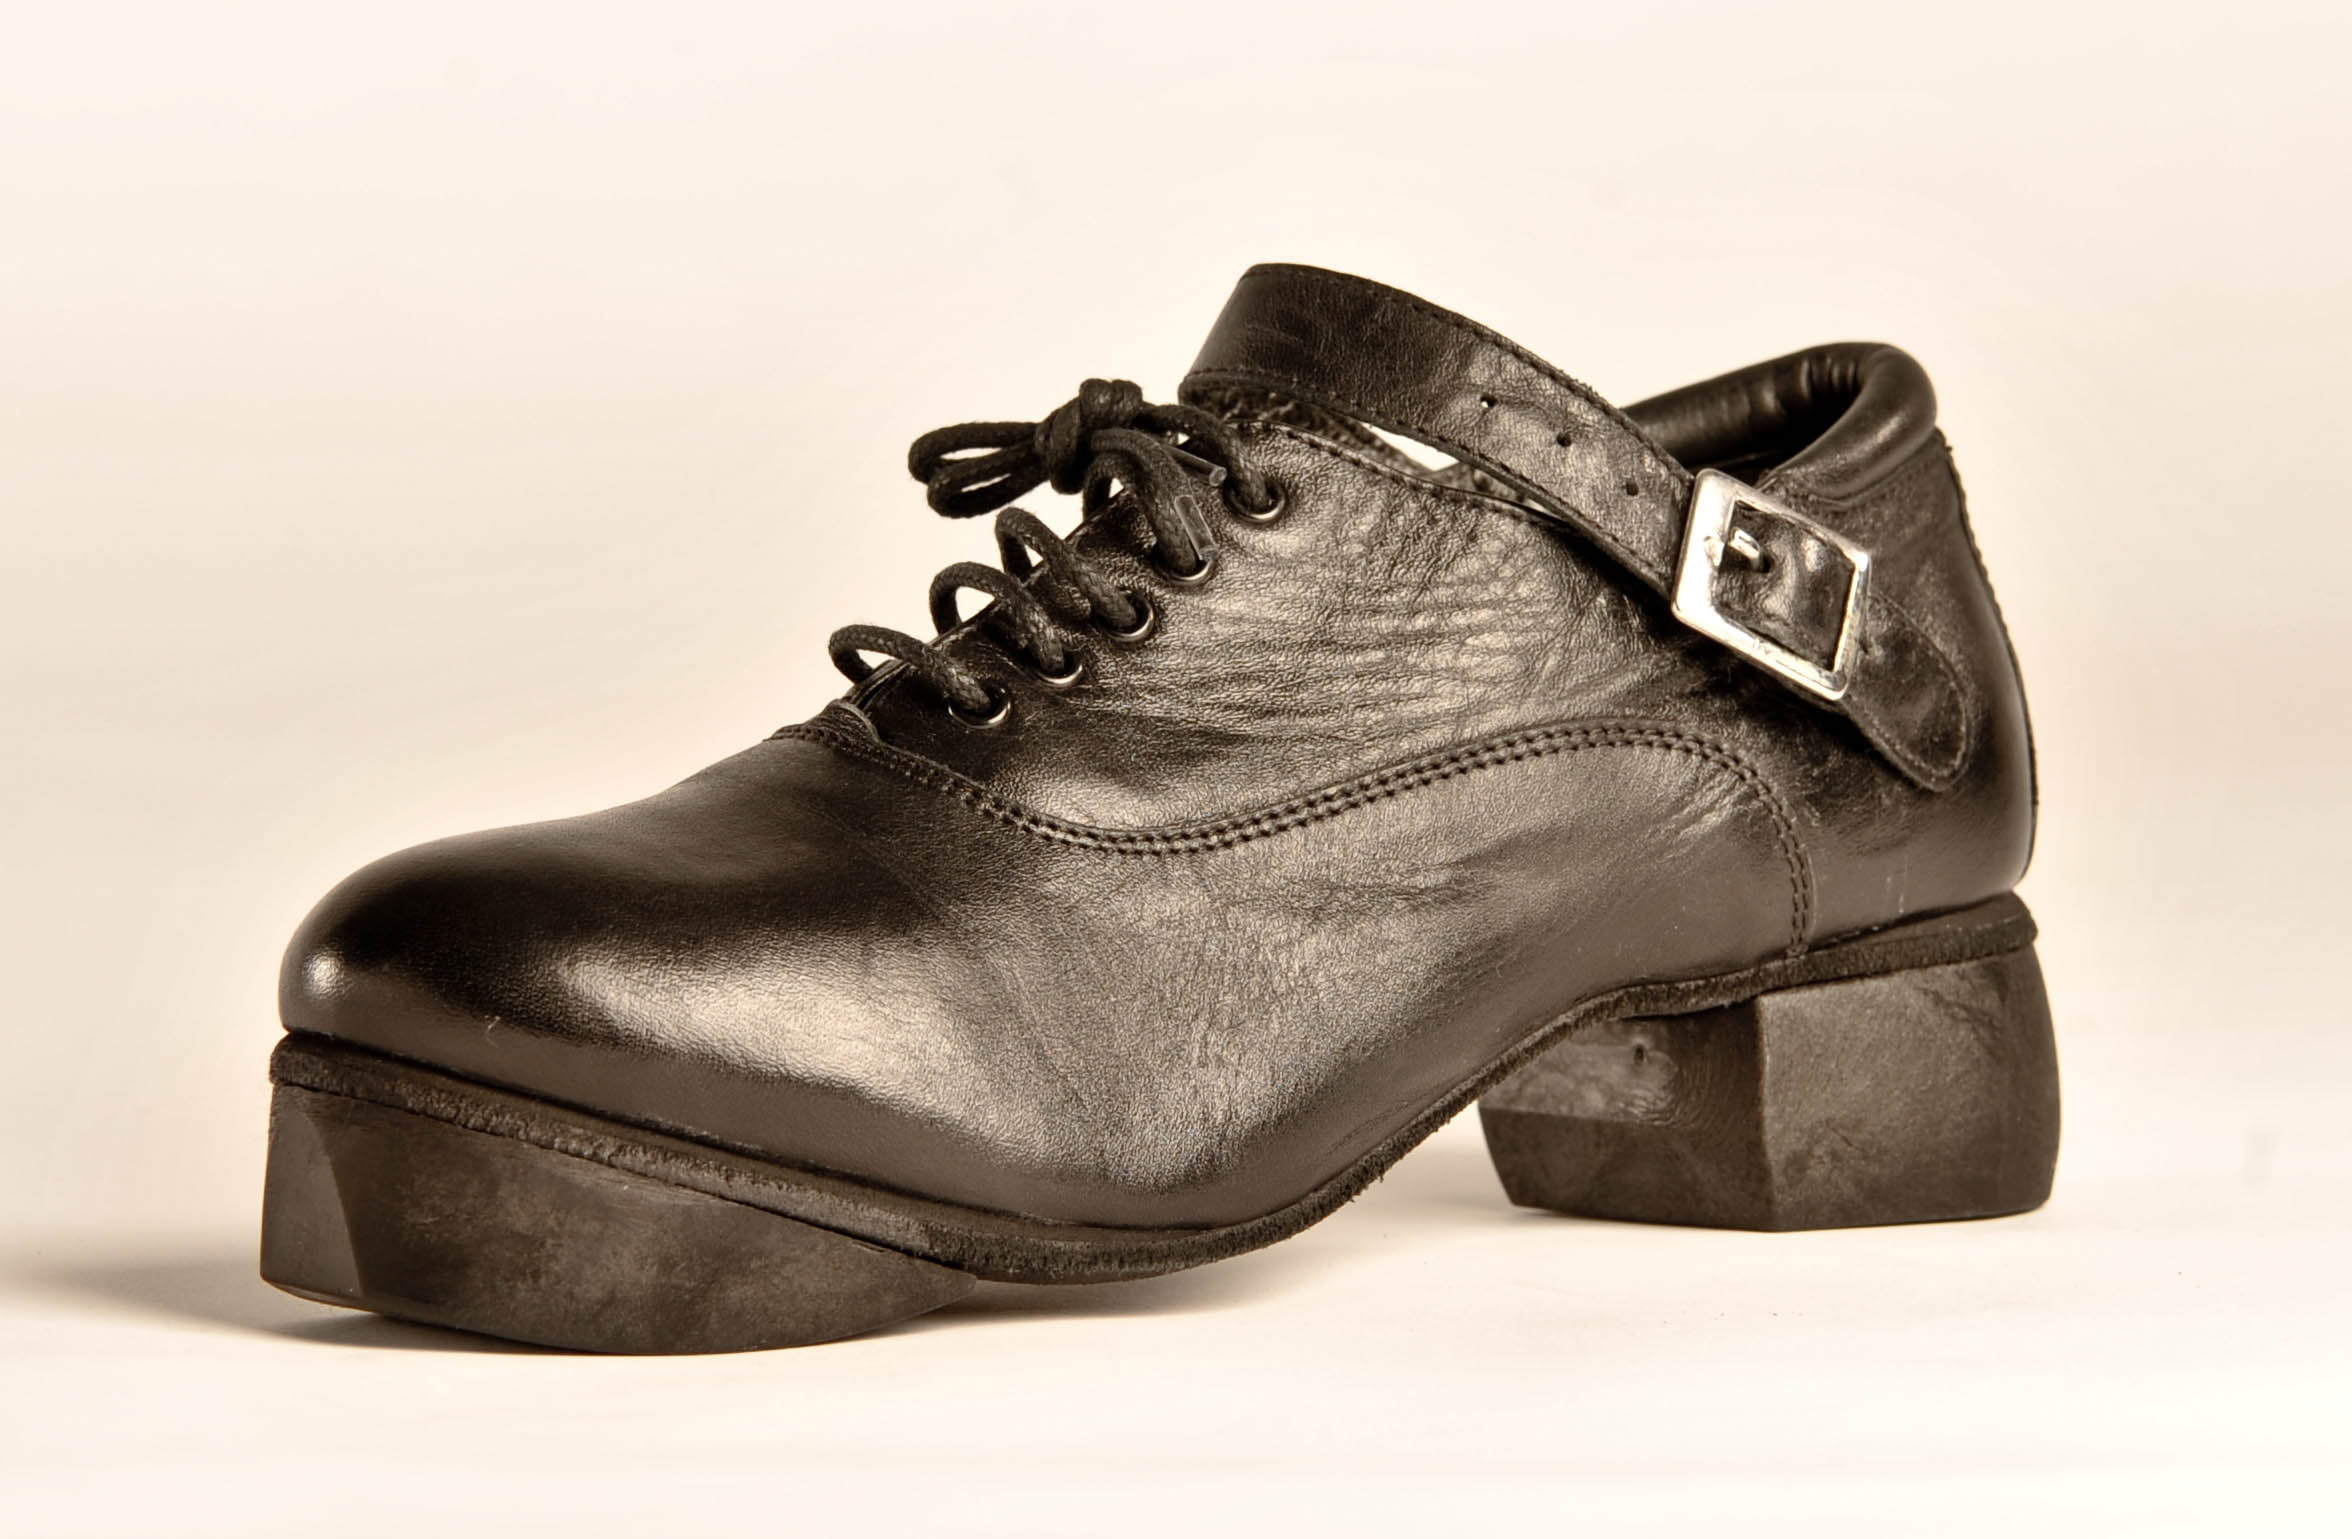 Hard Leather Shoes Blisters